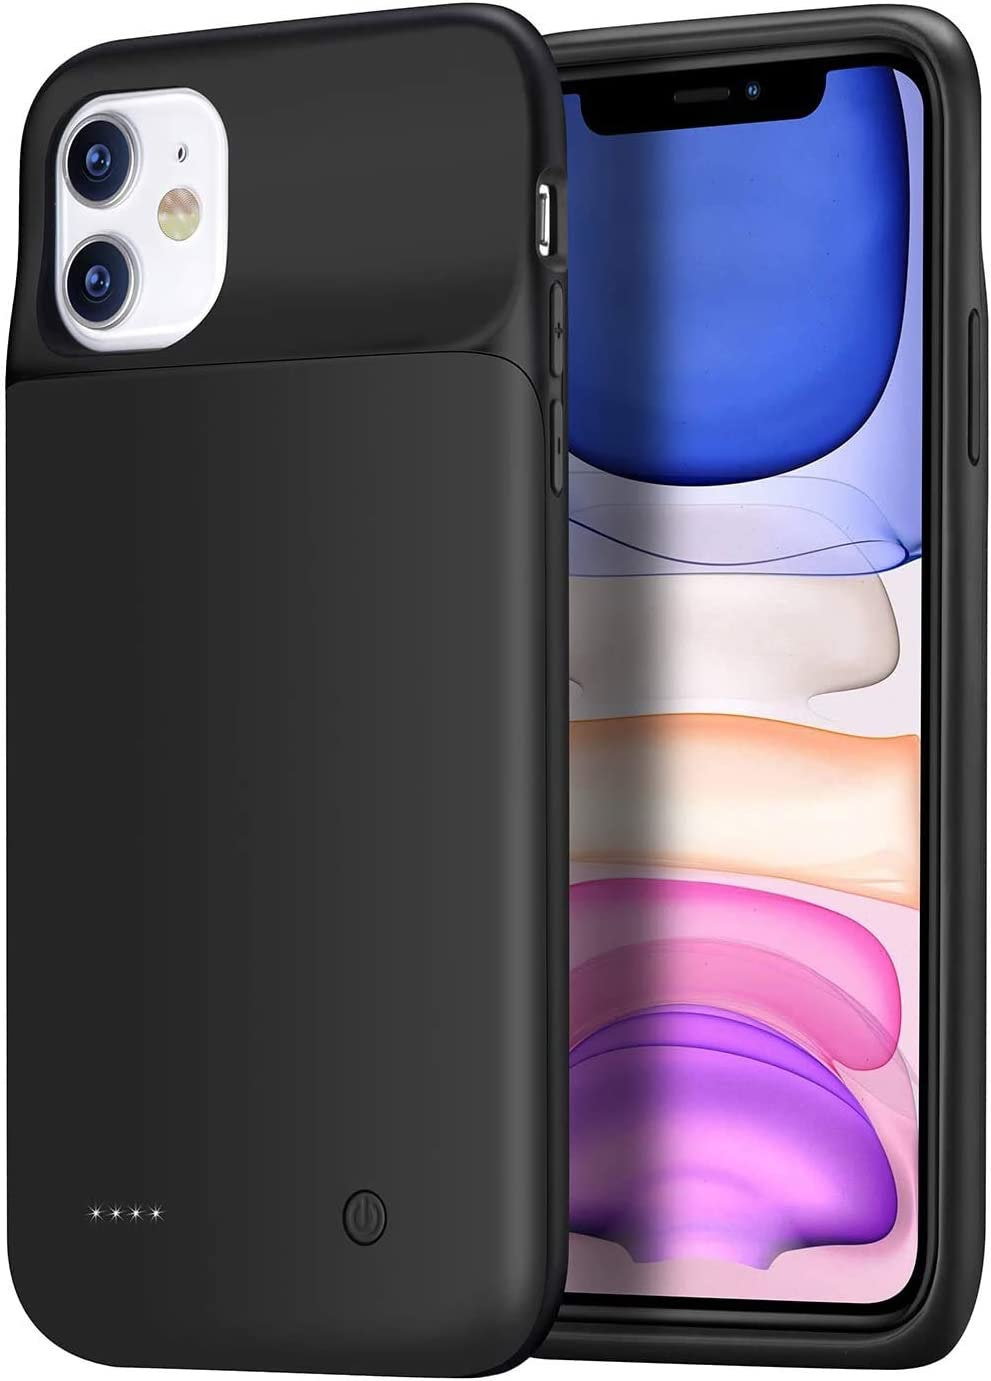 Wixann Battery case for iPhone 11, 4500mAh Slim Portable Charger Case Protective Rechargeable Battery Pack Charging Case for iPhone 11 (6.1 inch)